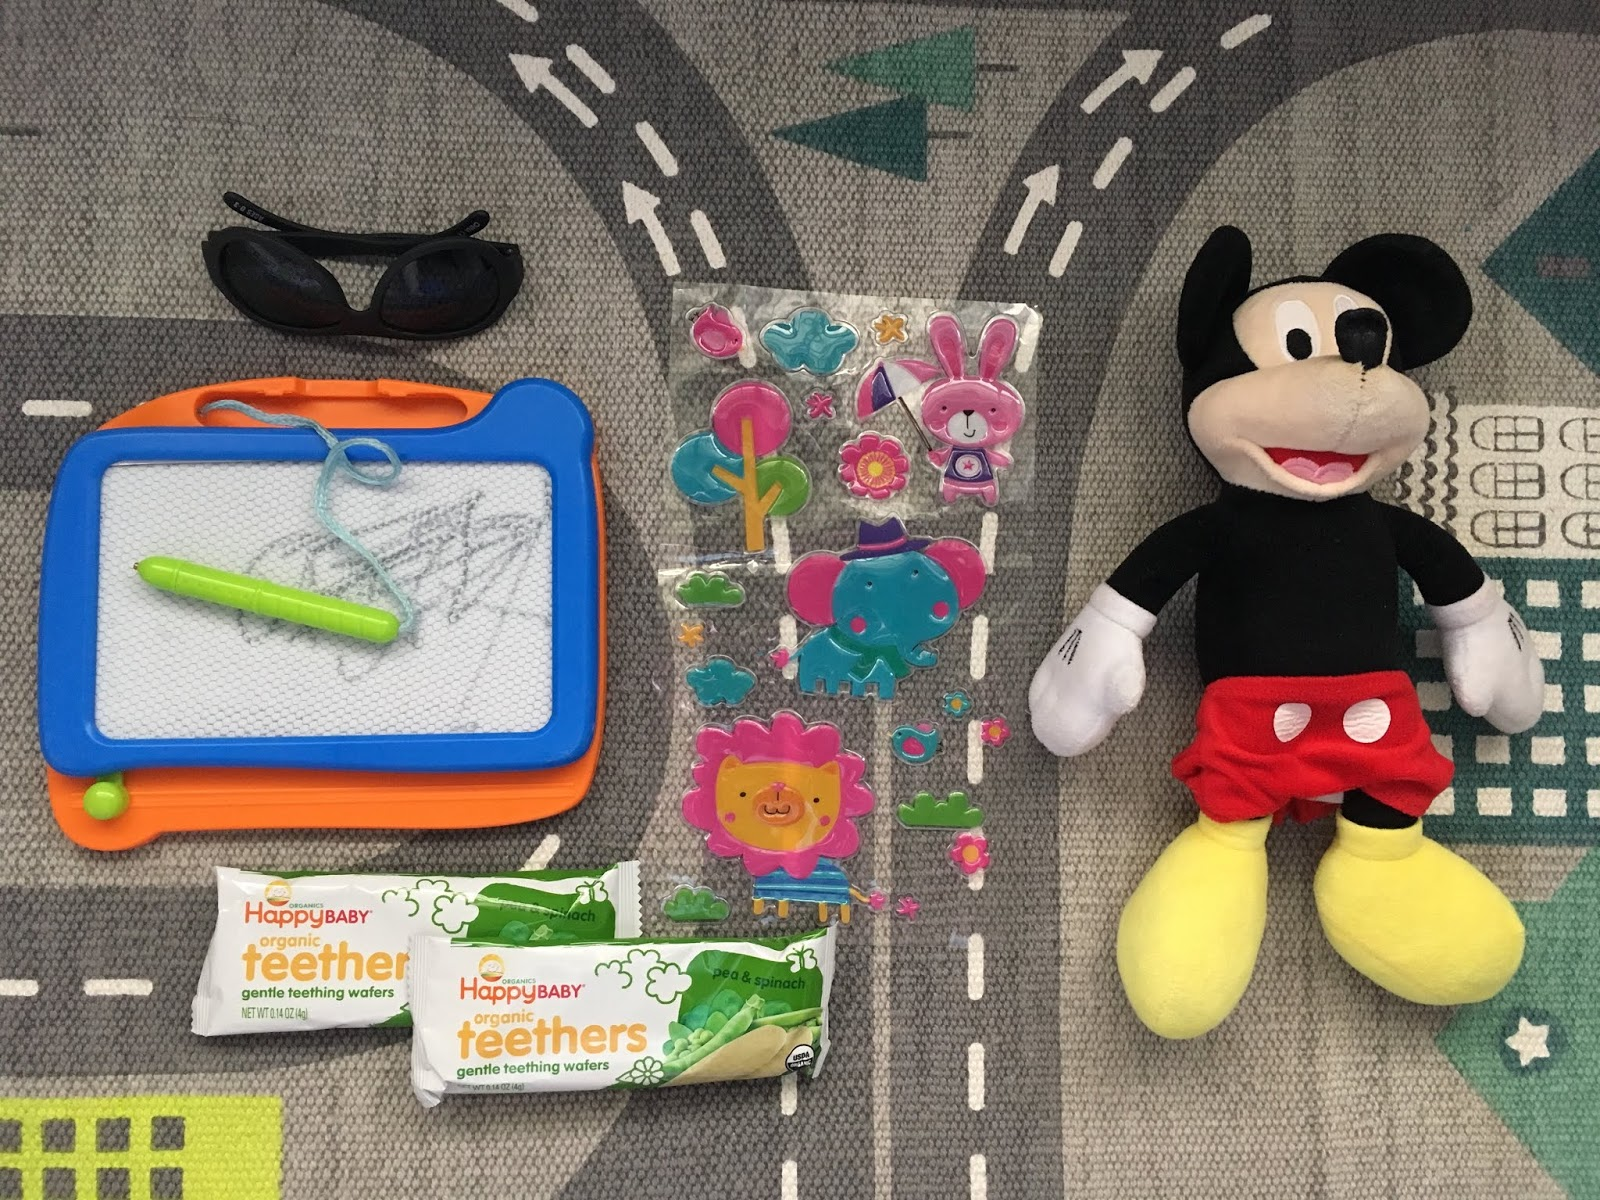 toddler plane road trip things you need